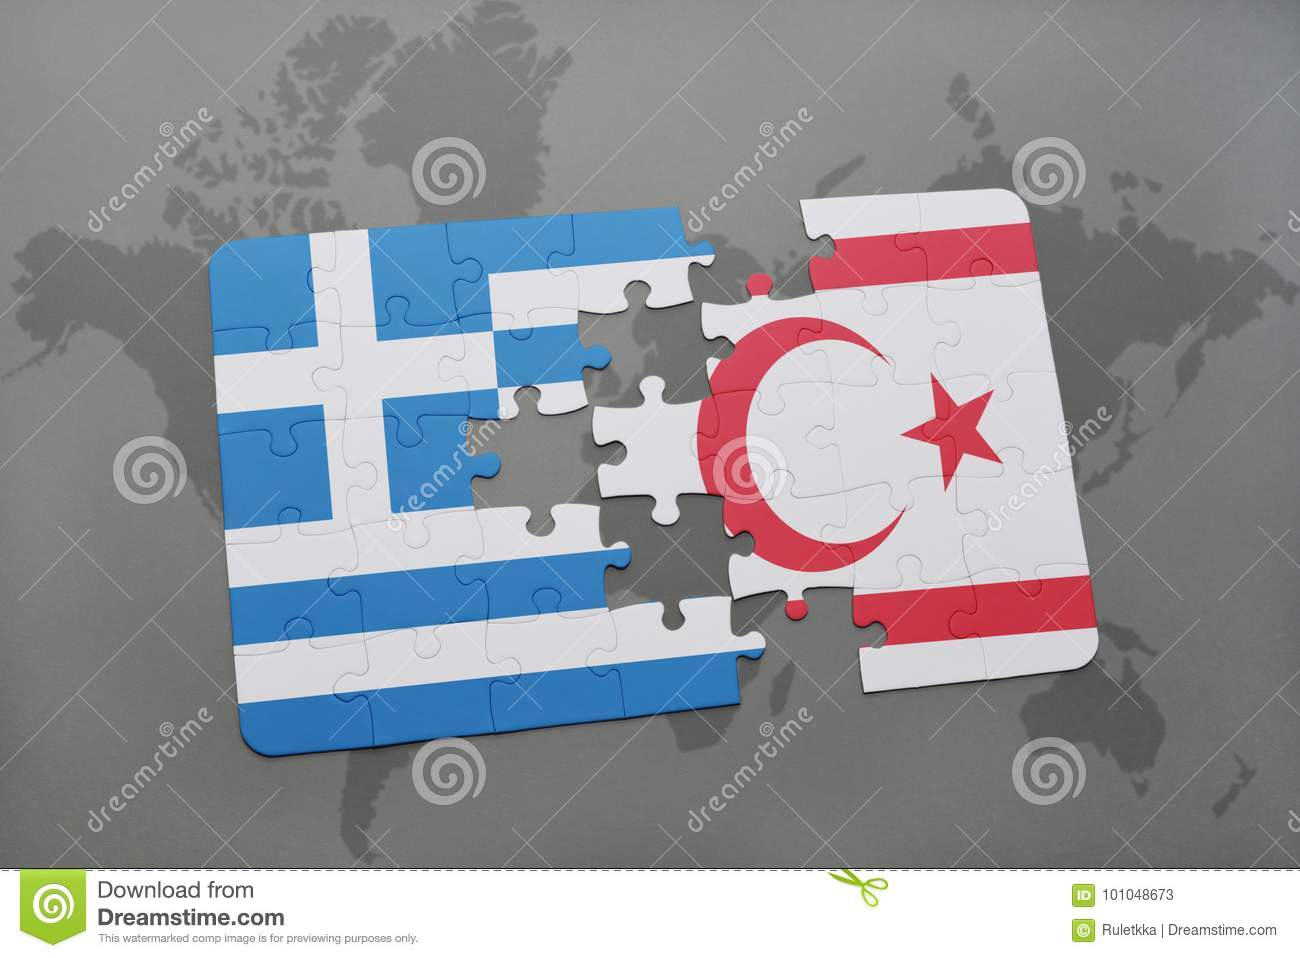 Puzzle with the national flag of greece and northern cyprus on a download puzzle with the national flag of greece and northern cyprus on a world map background gumiabroncs Images